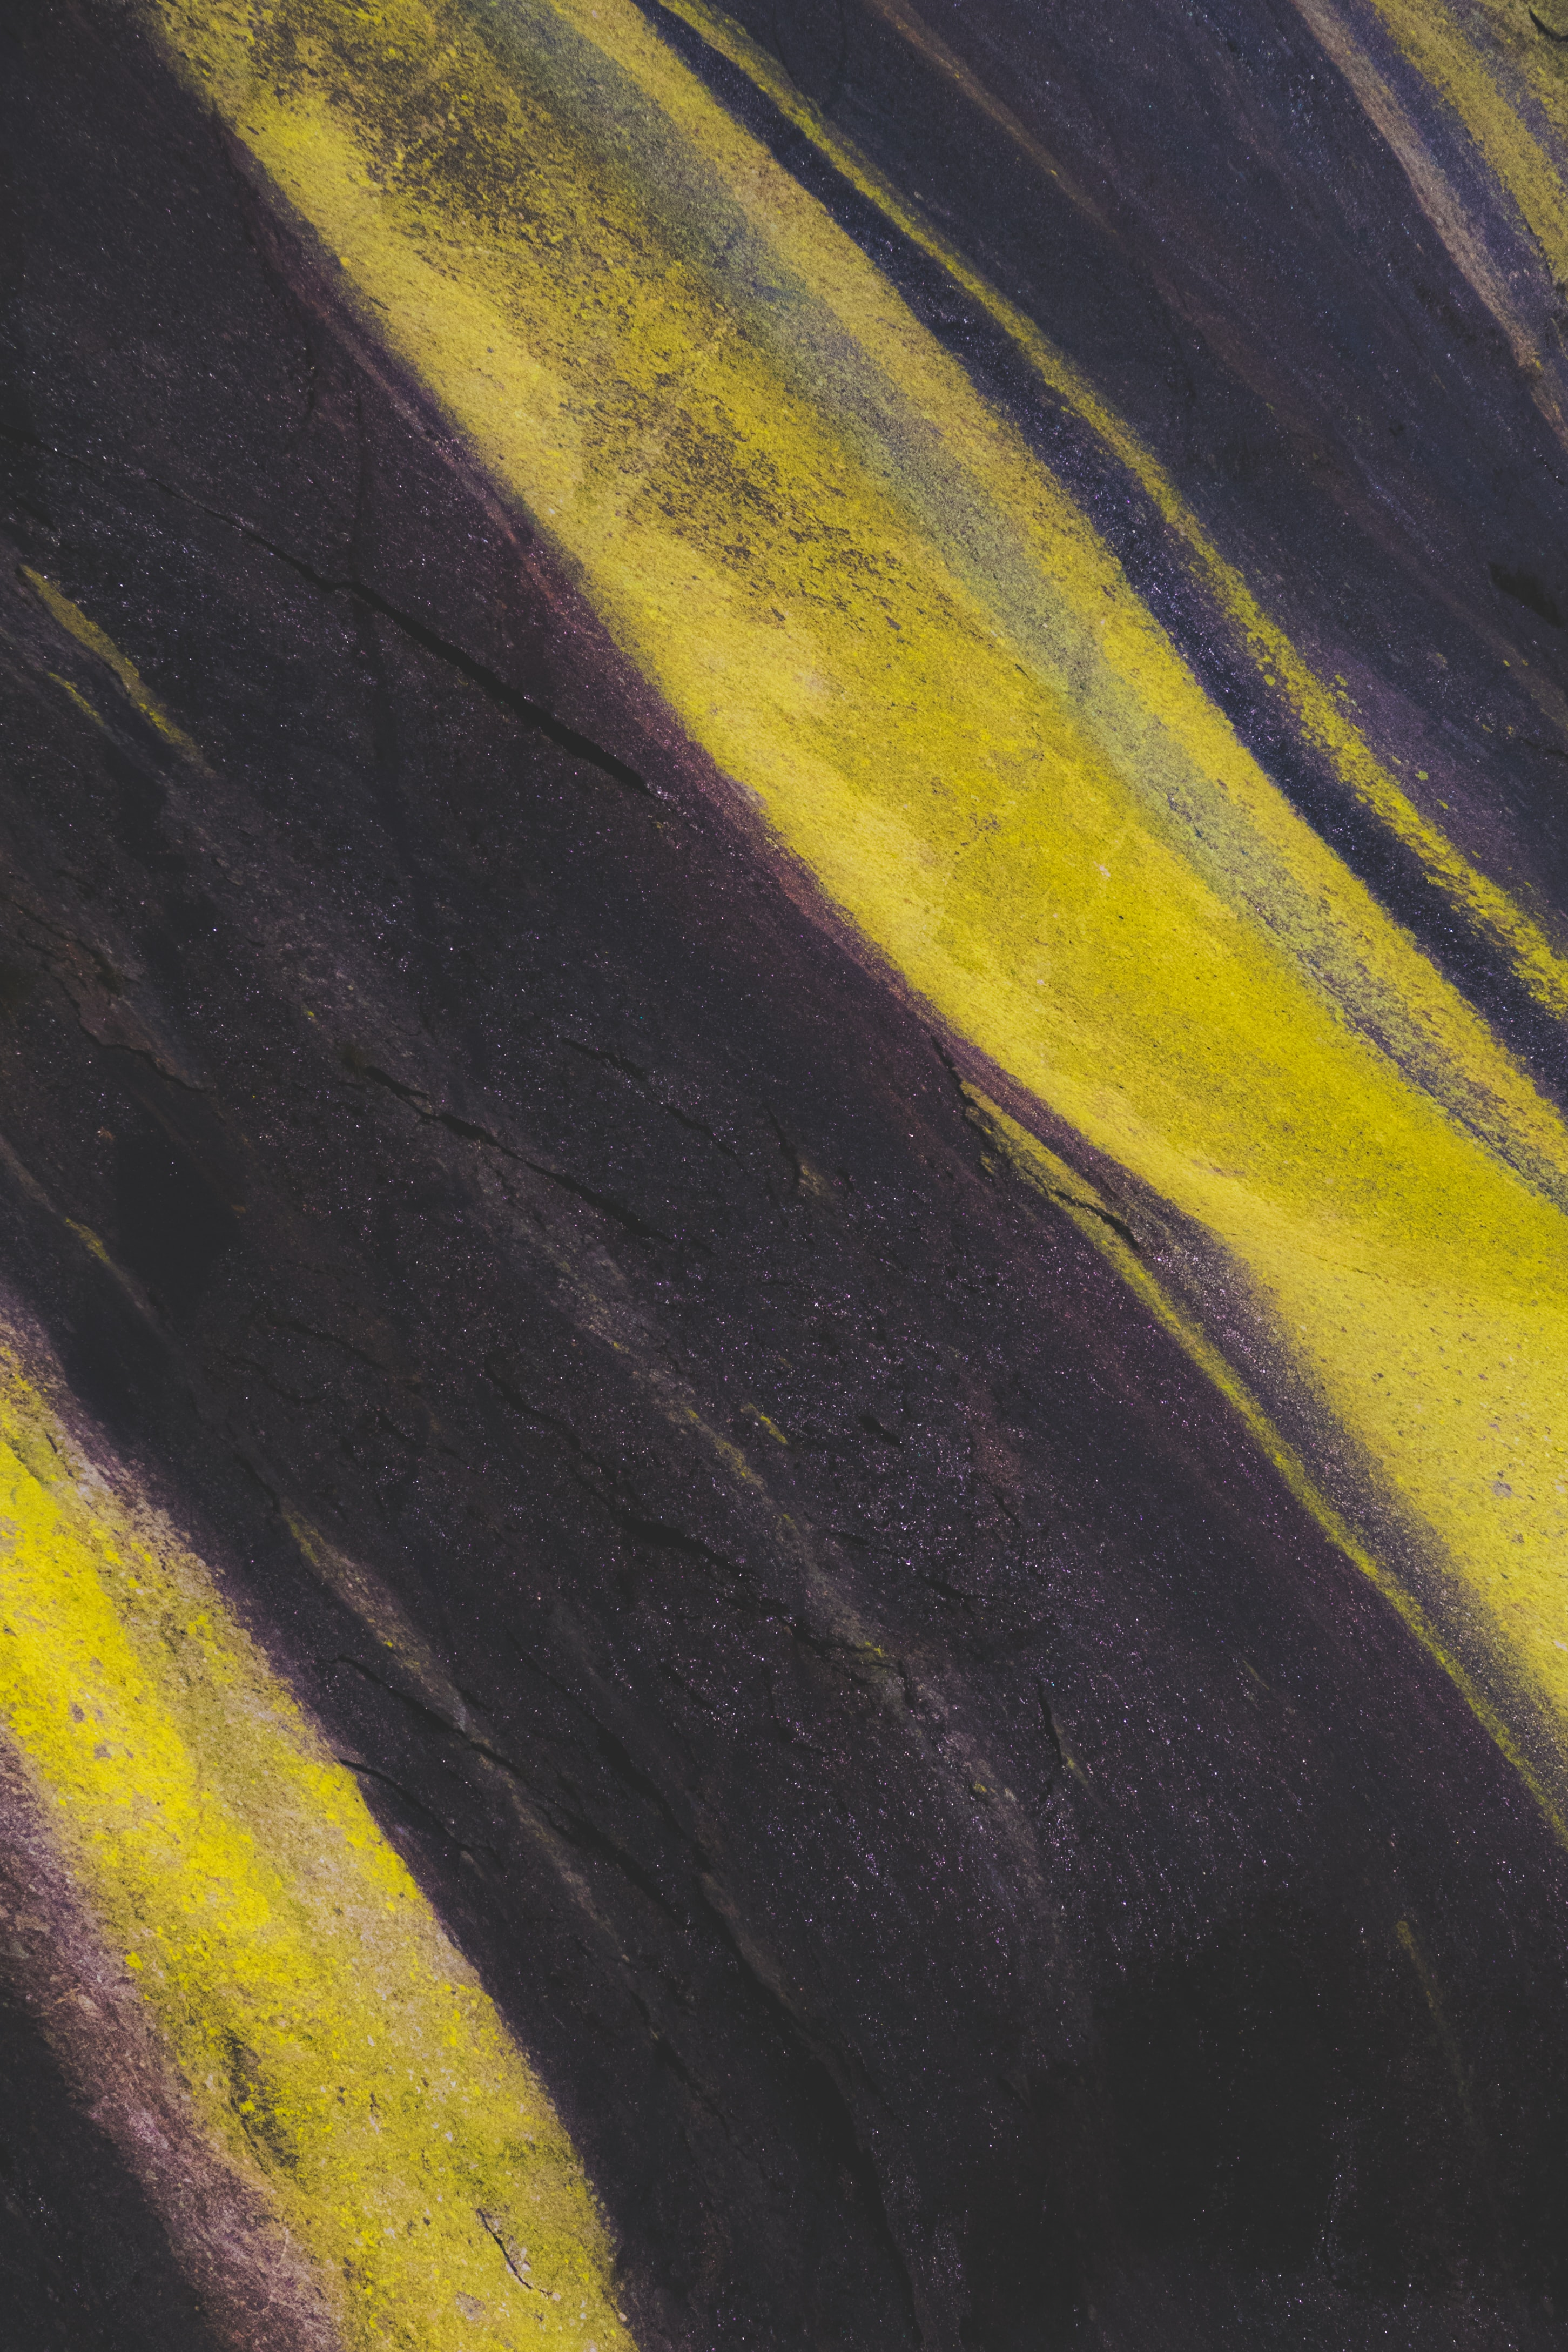 black and yellow surface